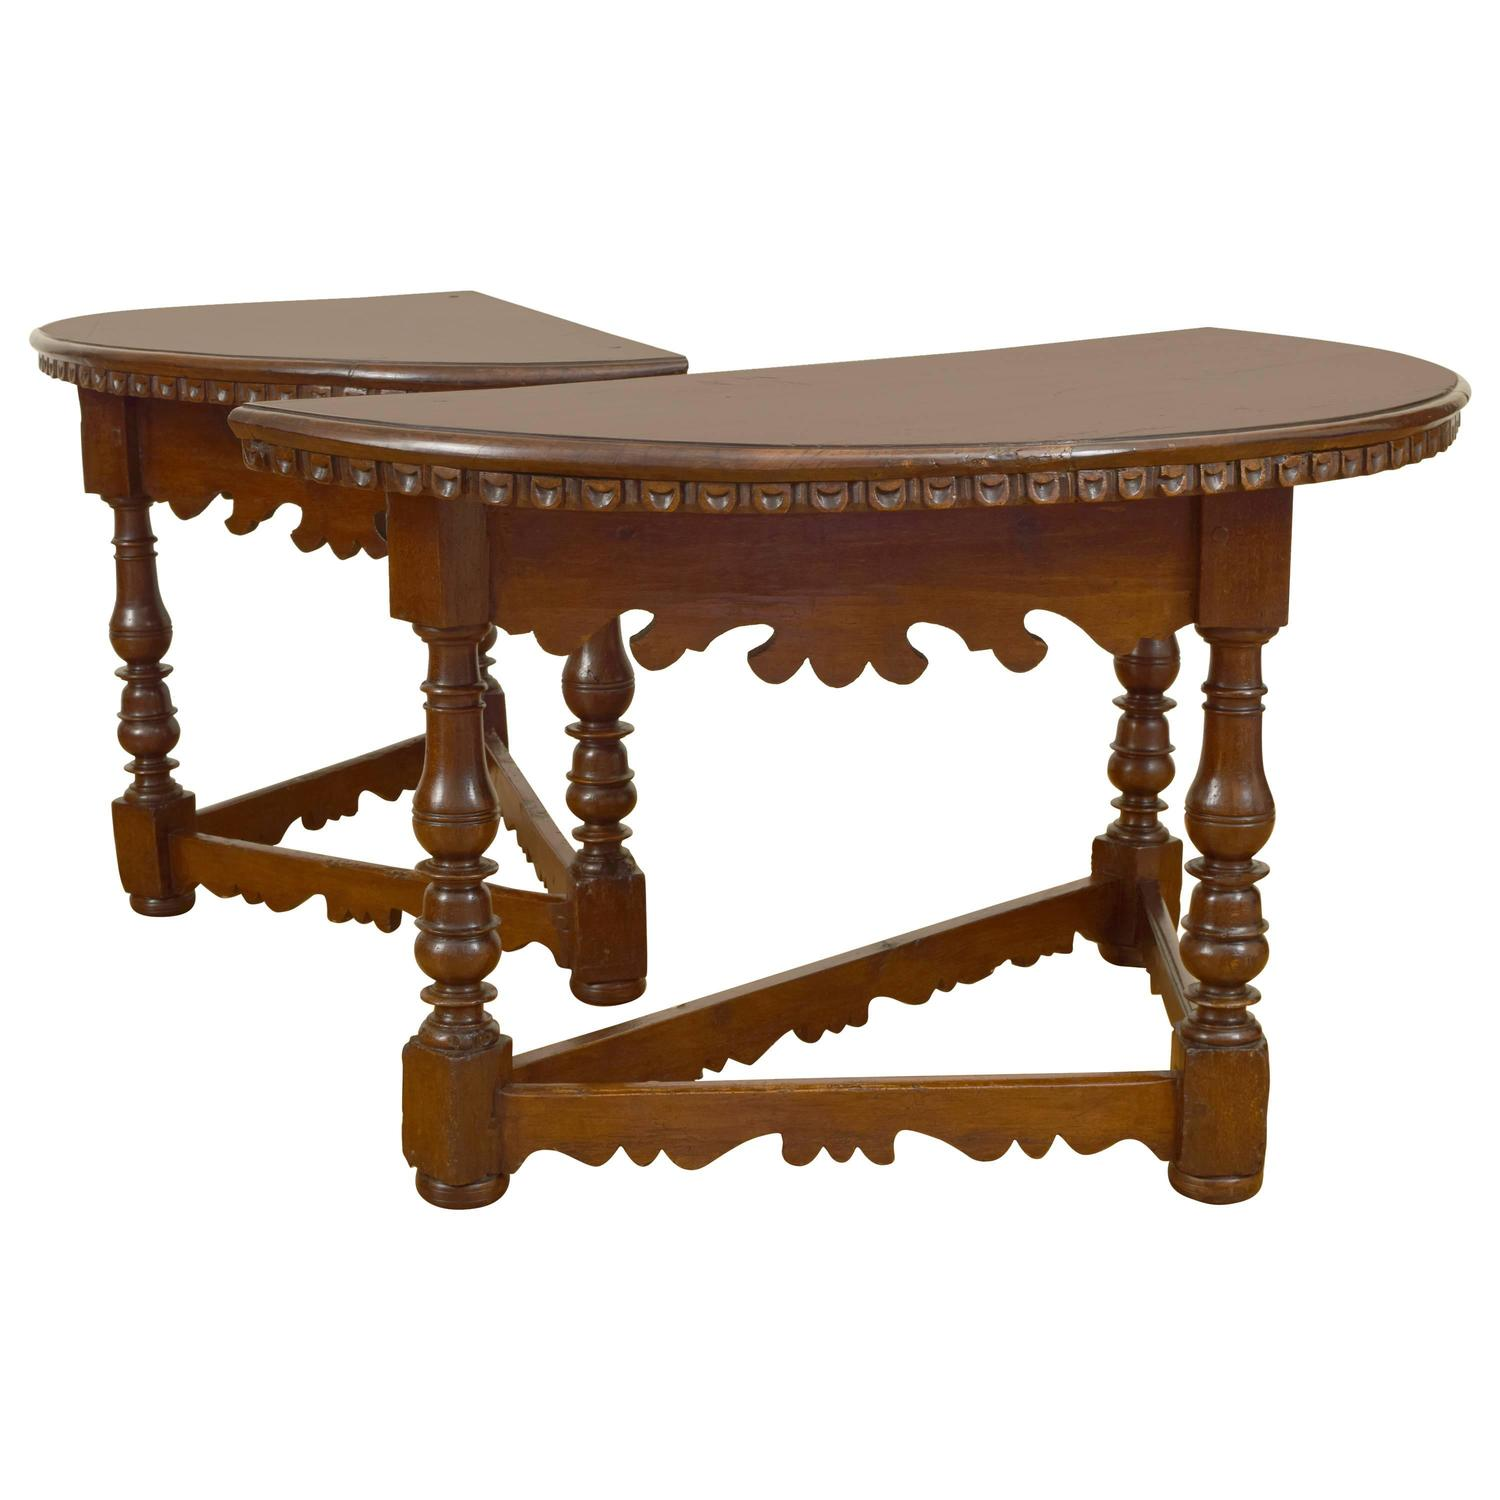 Pair of italian baroque walnut demilune console tables 18th pair of italian baroque walnut demilune console tables 18th century and later at 1stdibs geotapseo Gallery